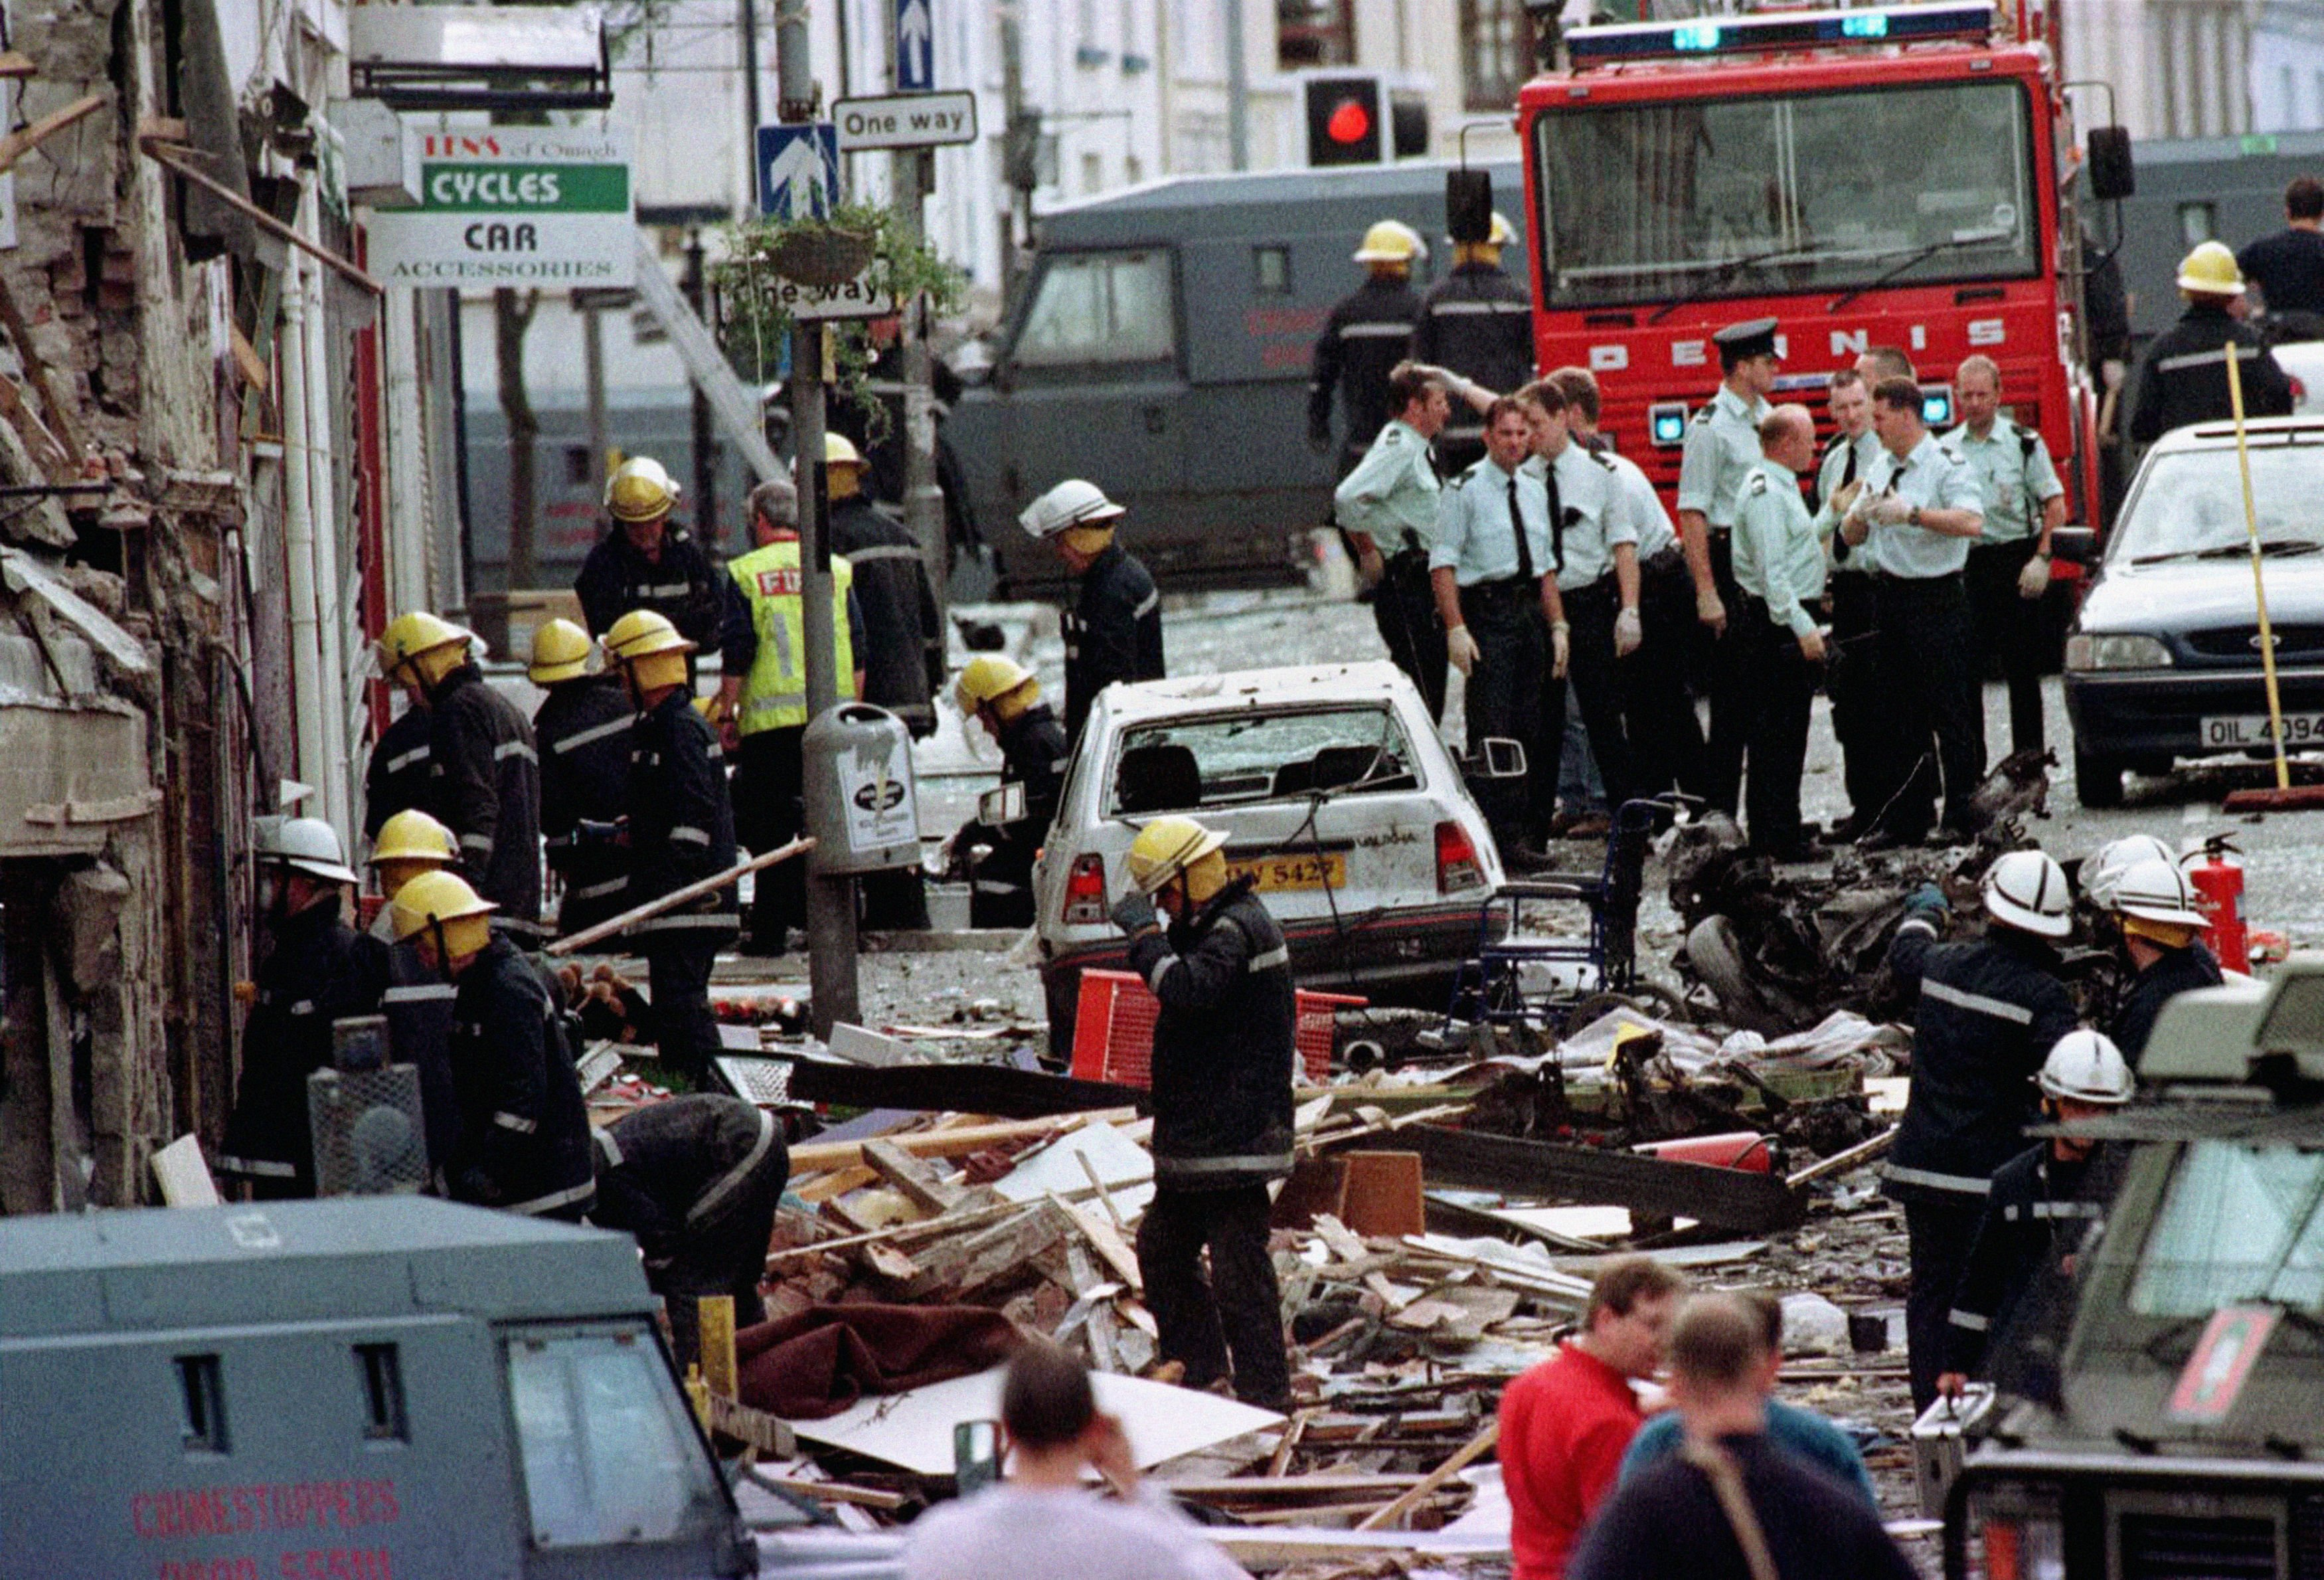 Immediate compensation payments to Troubles victims 'moral imperative'